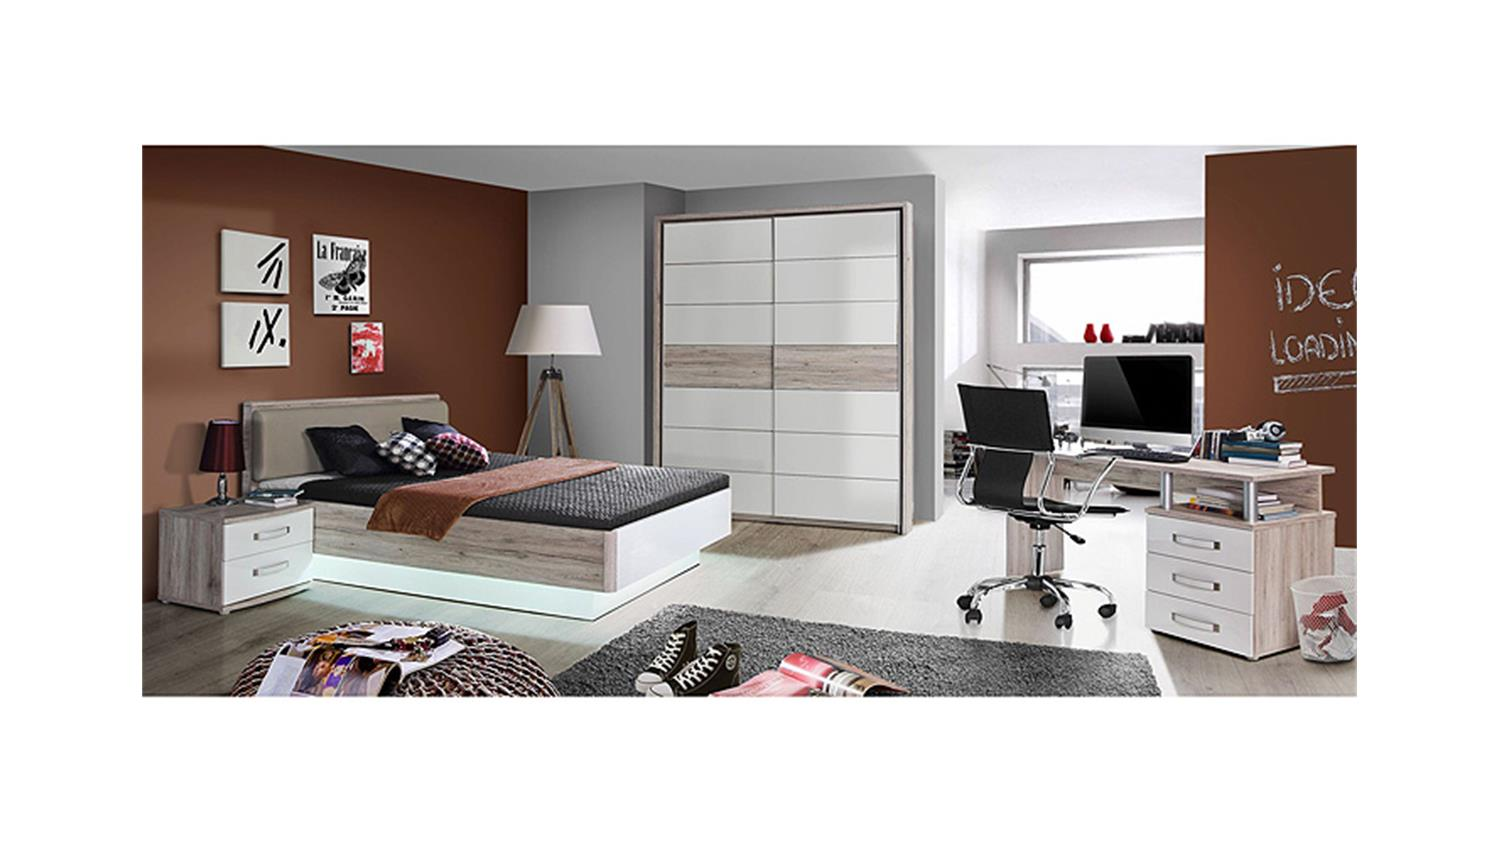 nachtkommode rondino kommode sandeiche wei hochglanz. Black Bedroom Furniture Sets. Home Design Ideas